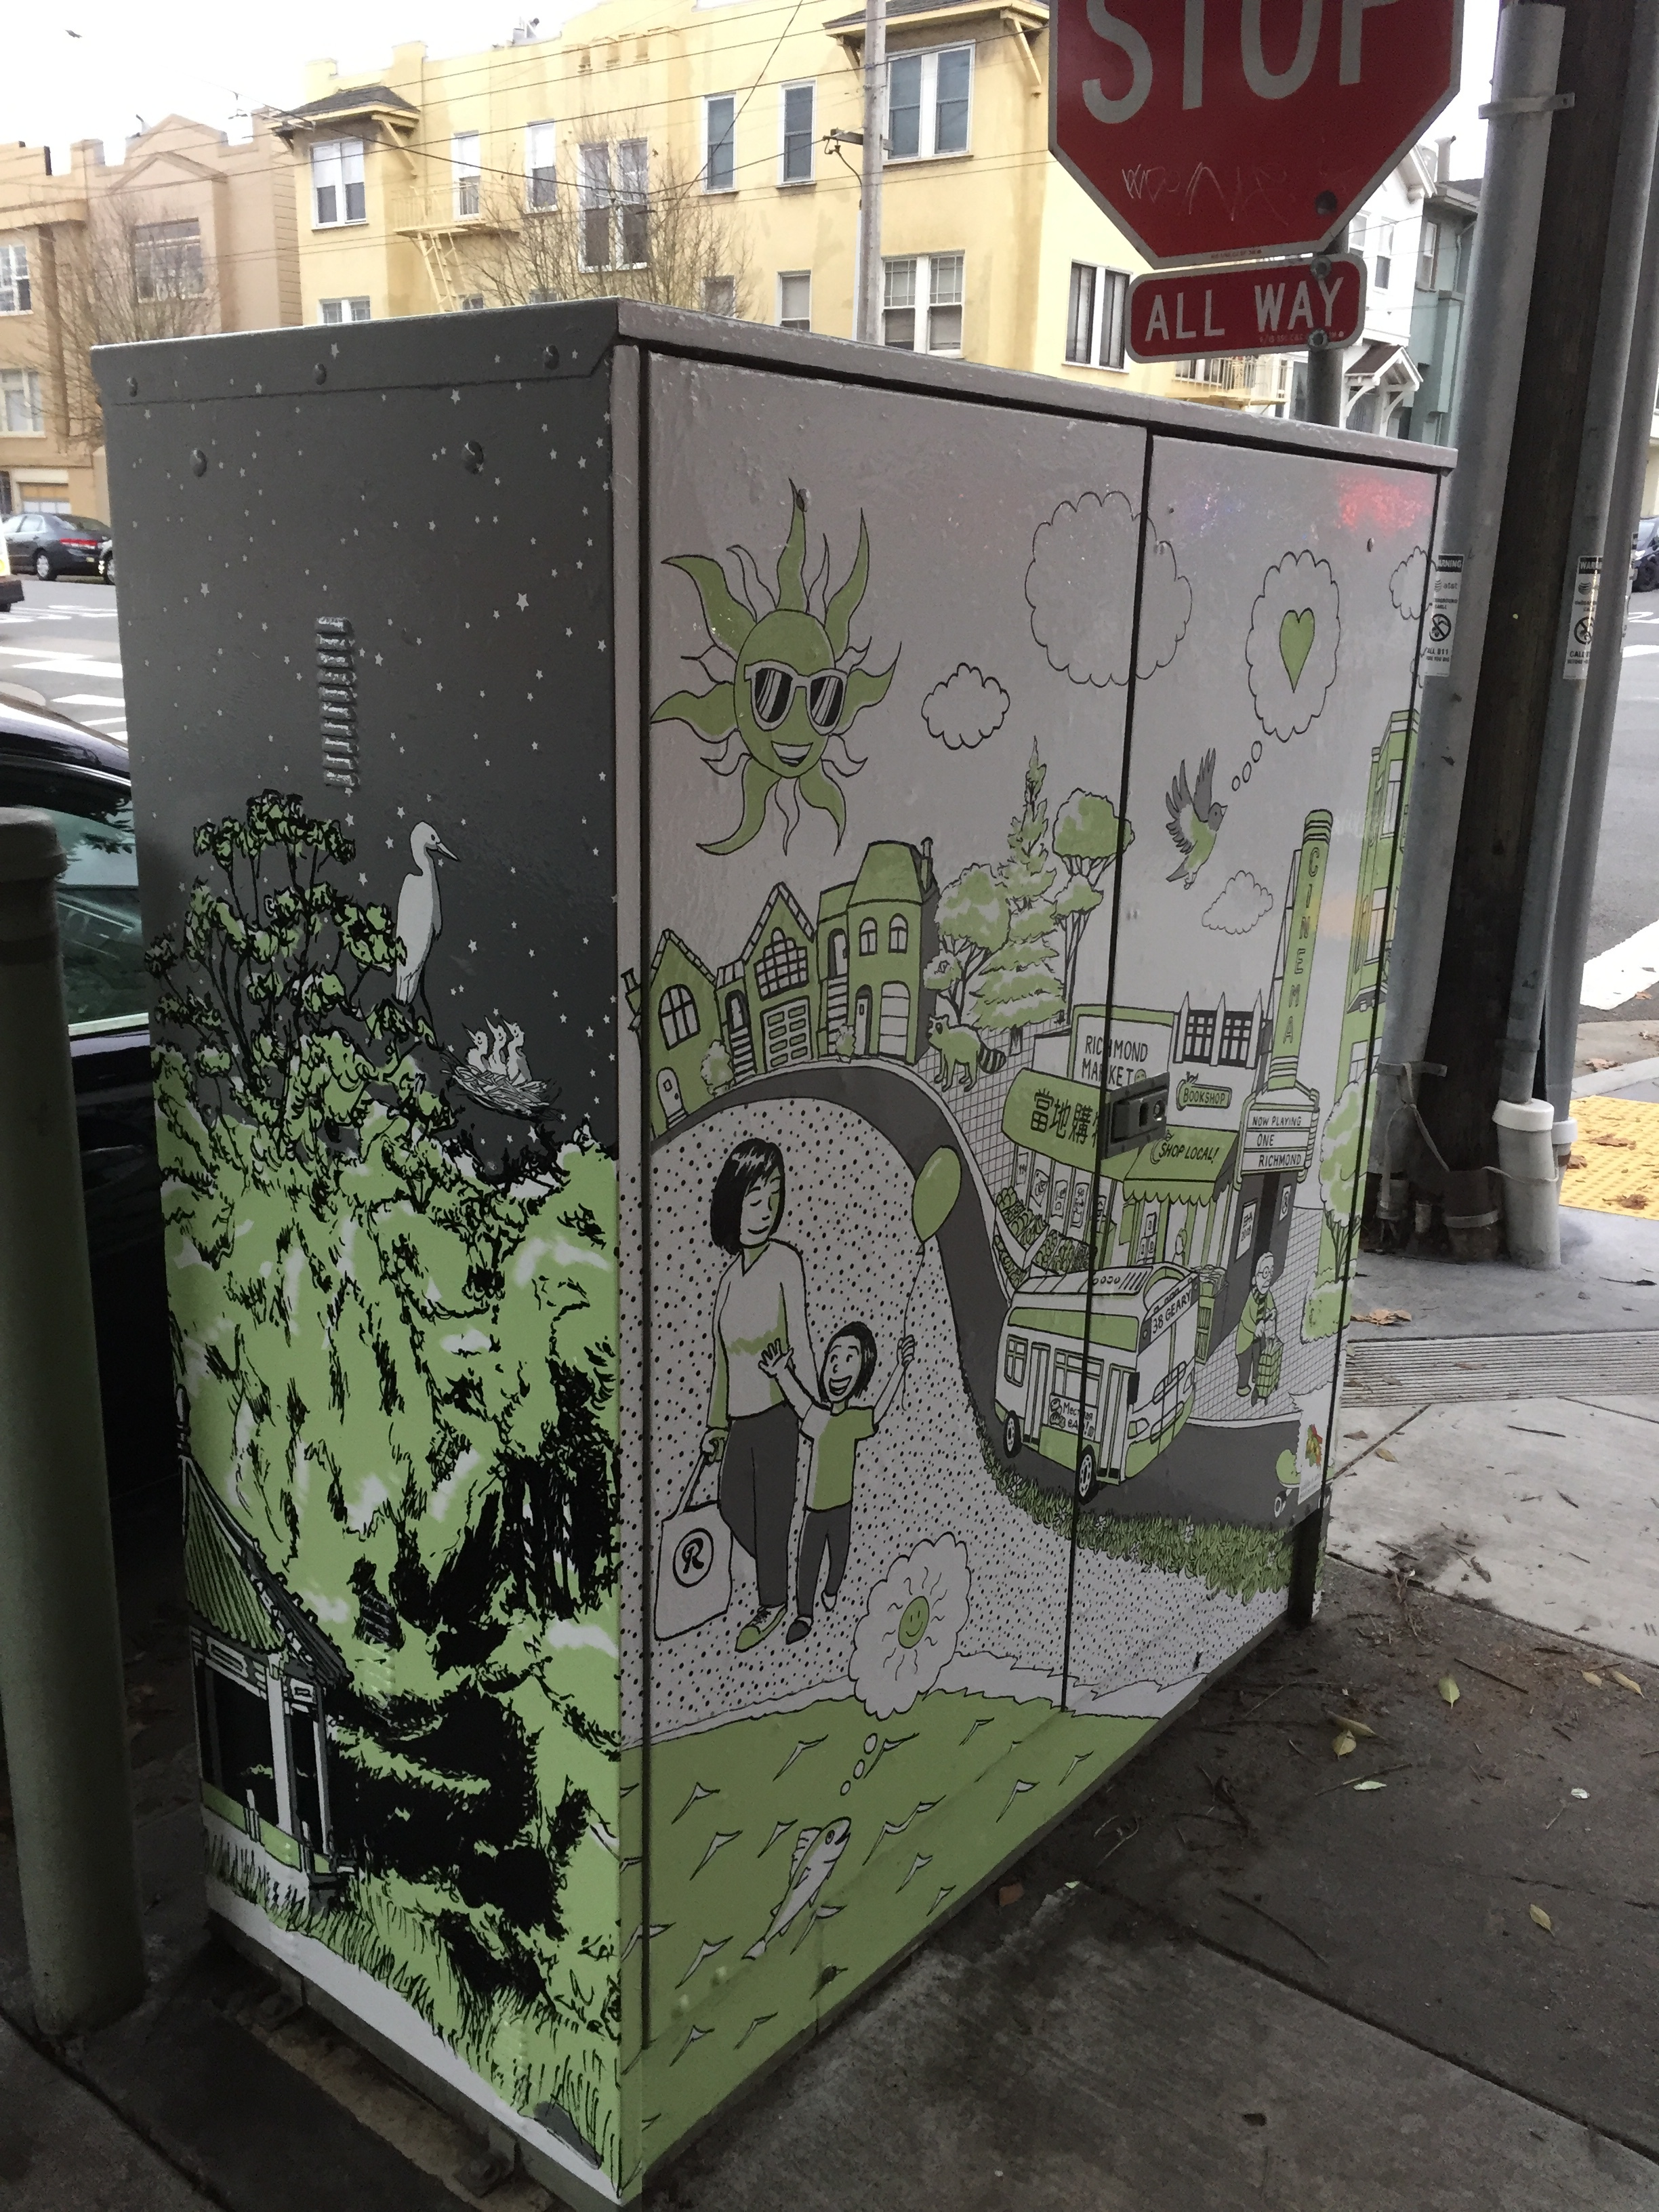 CleanSlateGroup_GraffitiResistant_SanFrancisco,CA_District1_199.19thAve_6.JPG